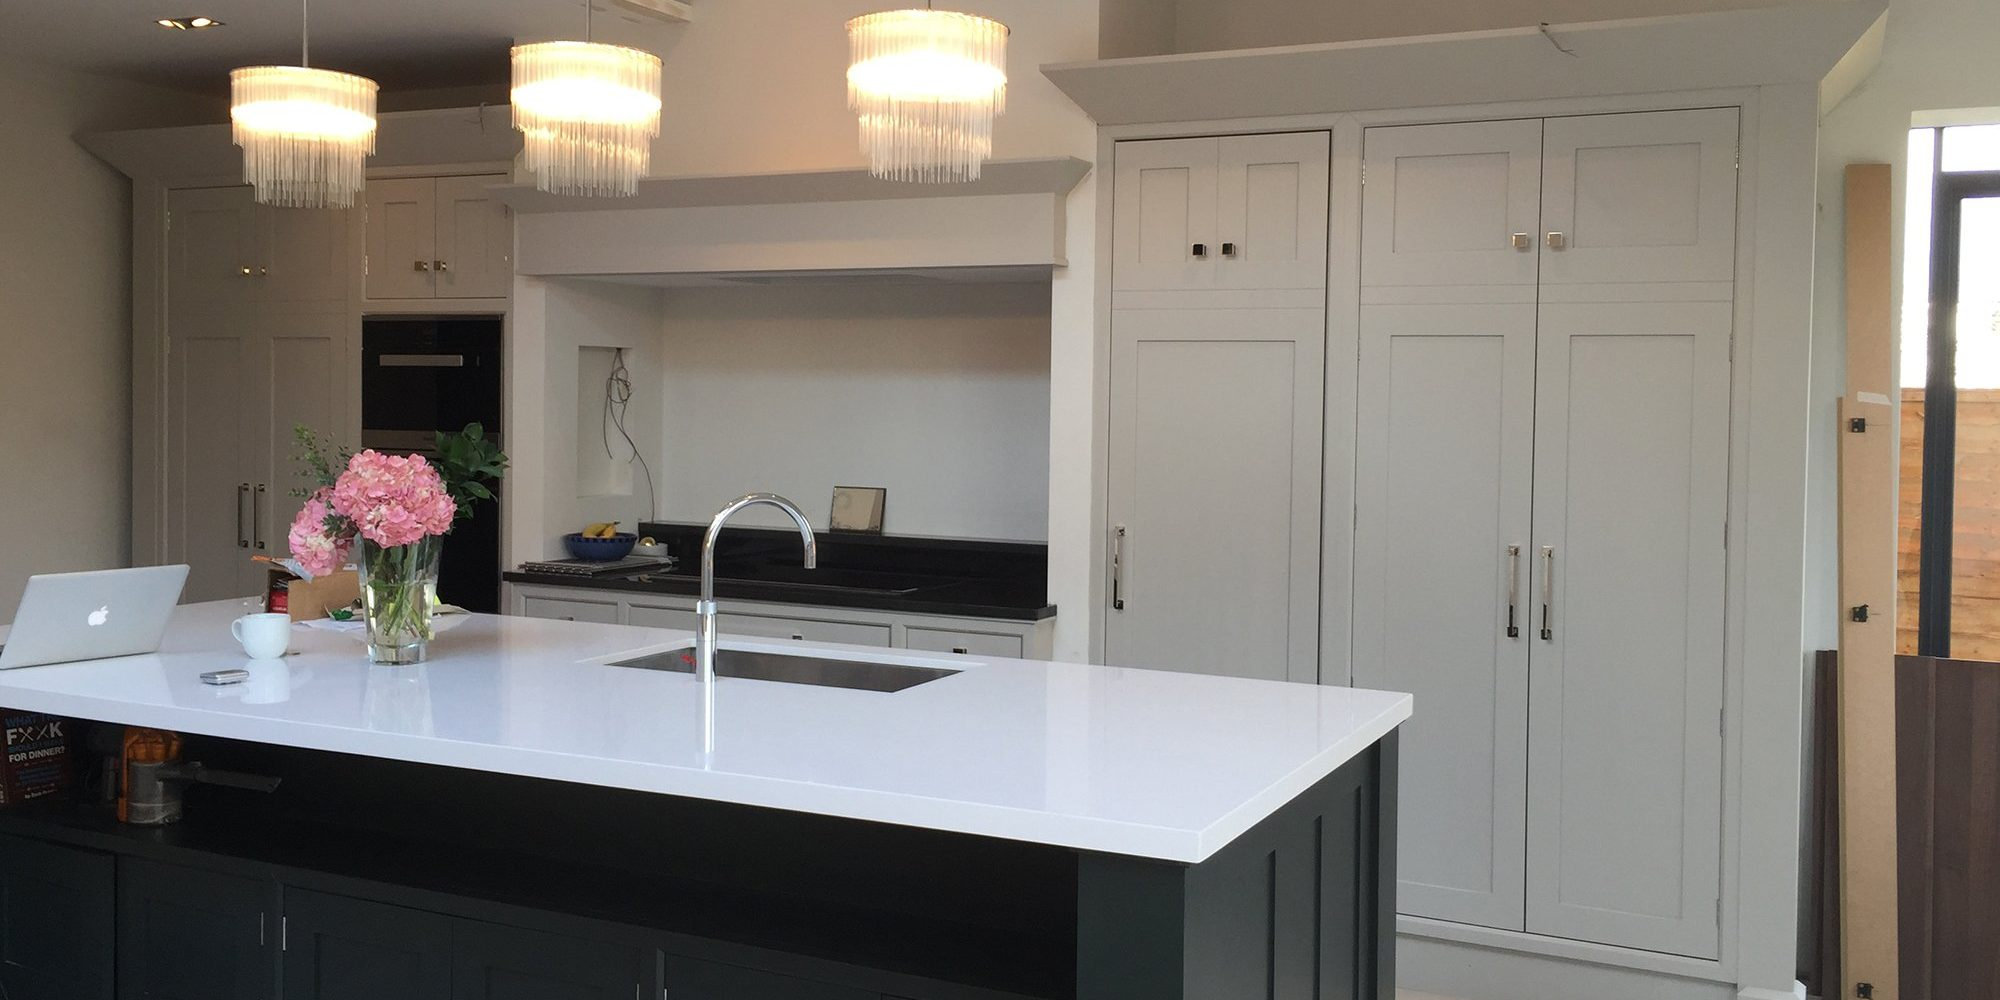 Bespoke Kitchen with Black and Grey Cabinets - Bourne's Fine Furniture Sussex